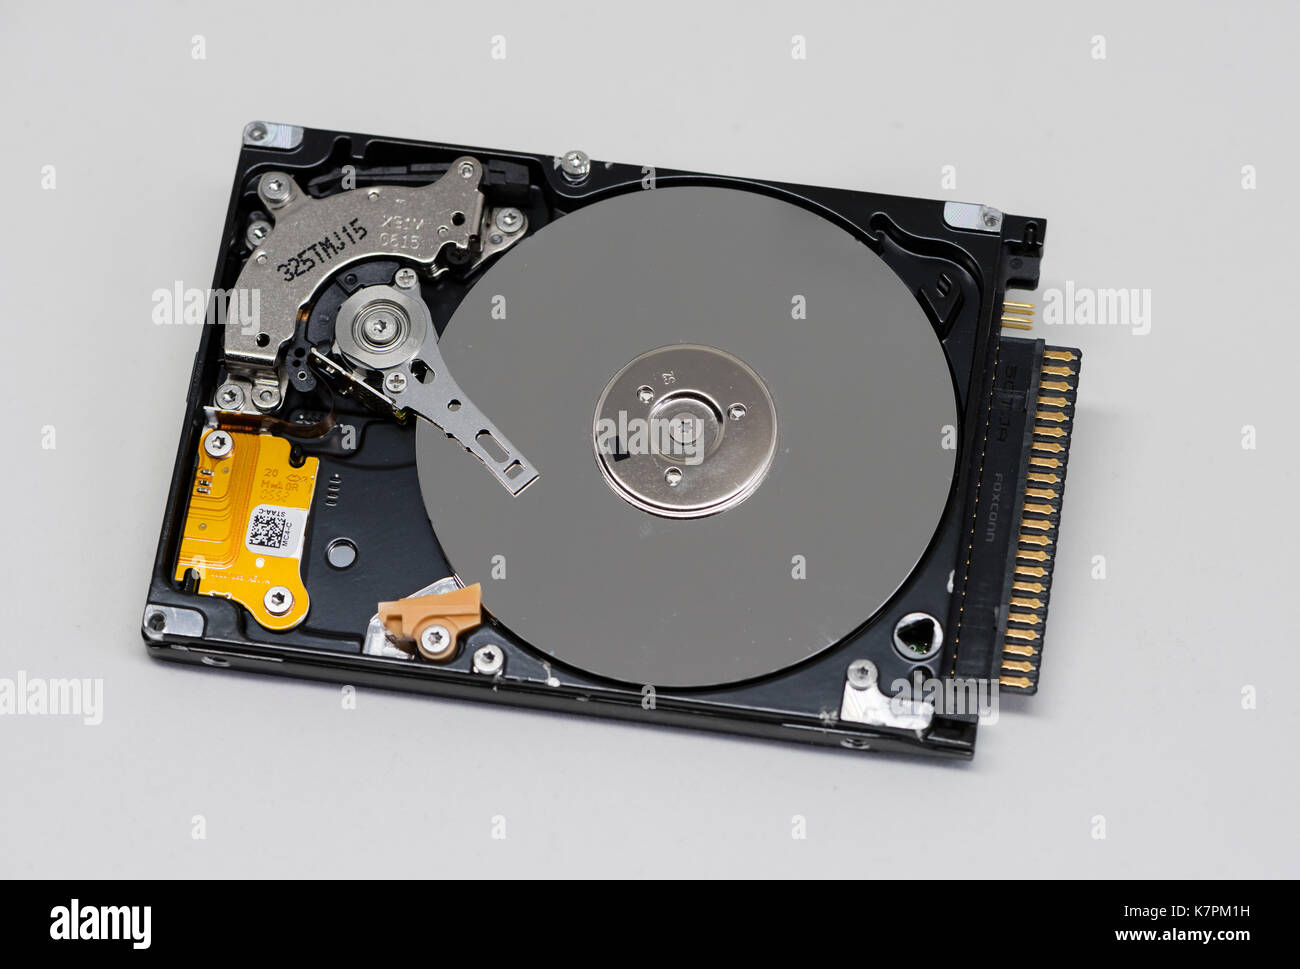 how to clean my computer hard drive